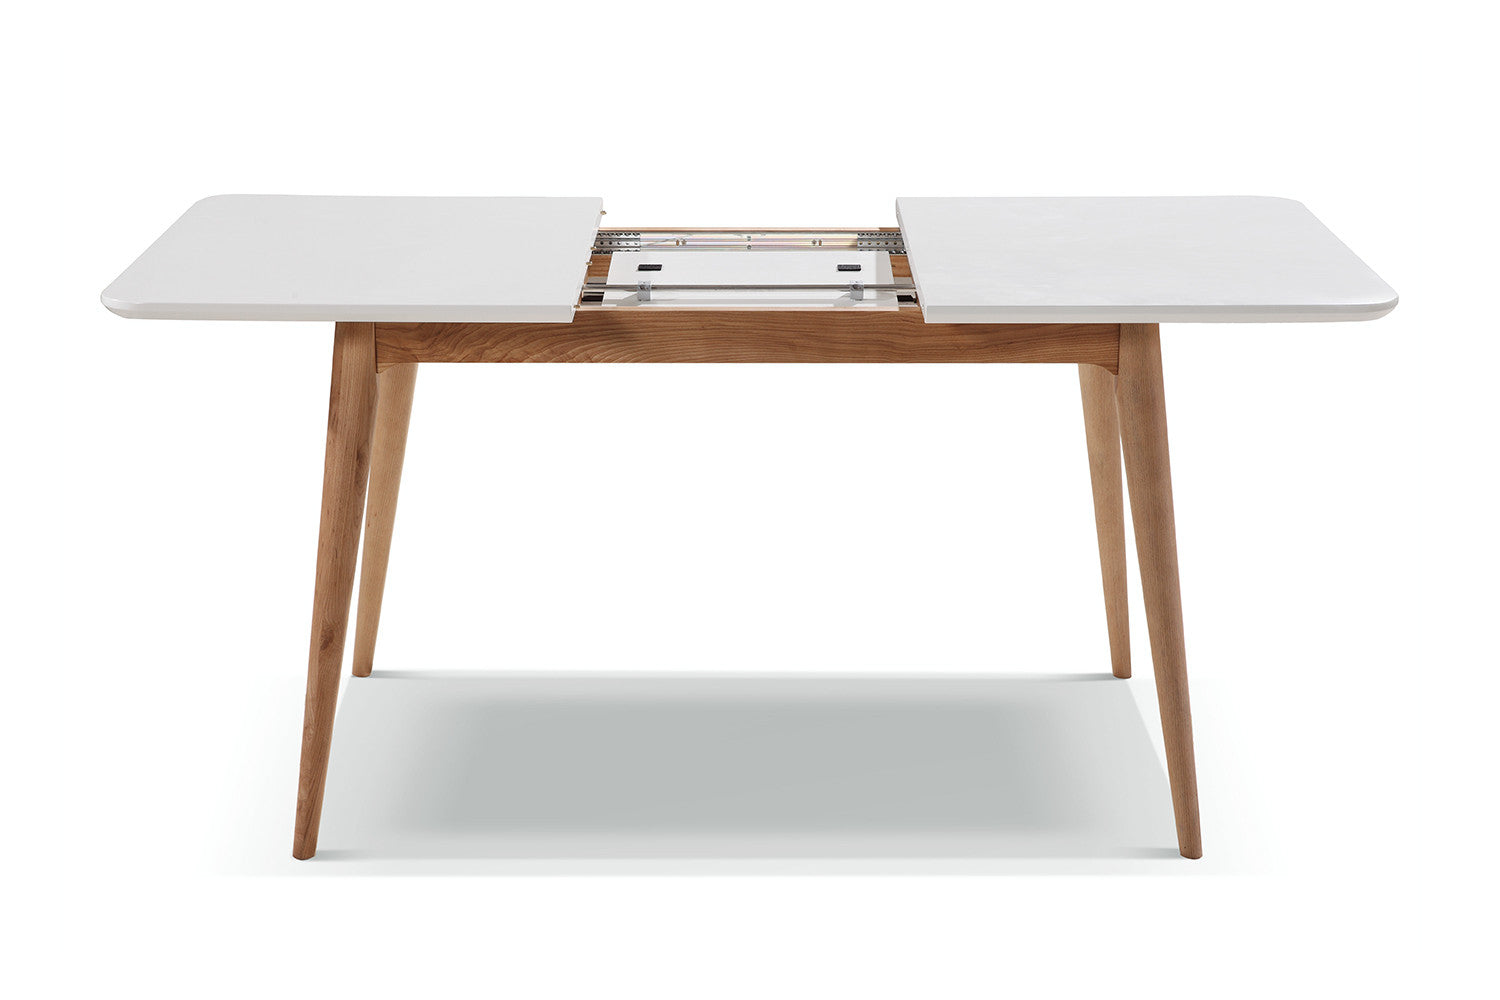 Table de cuisine extensible vintage breggia dewarens for Table a rallonge scandinave